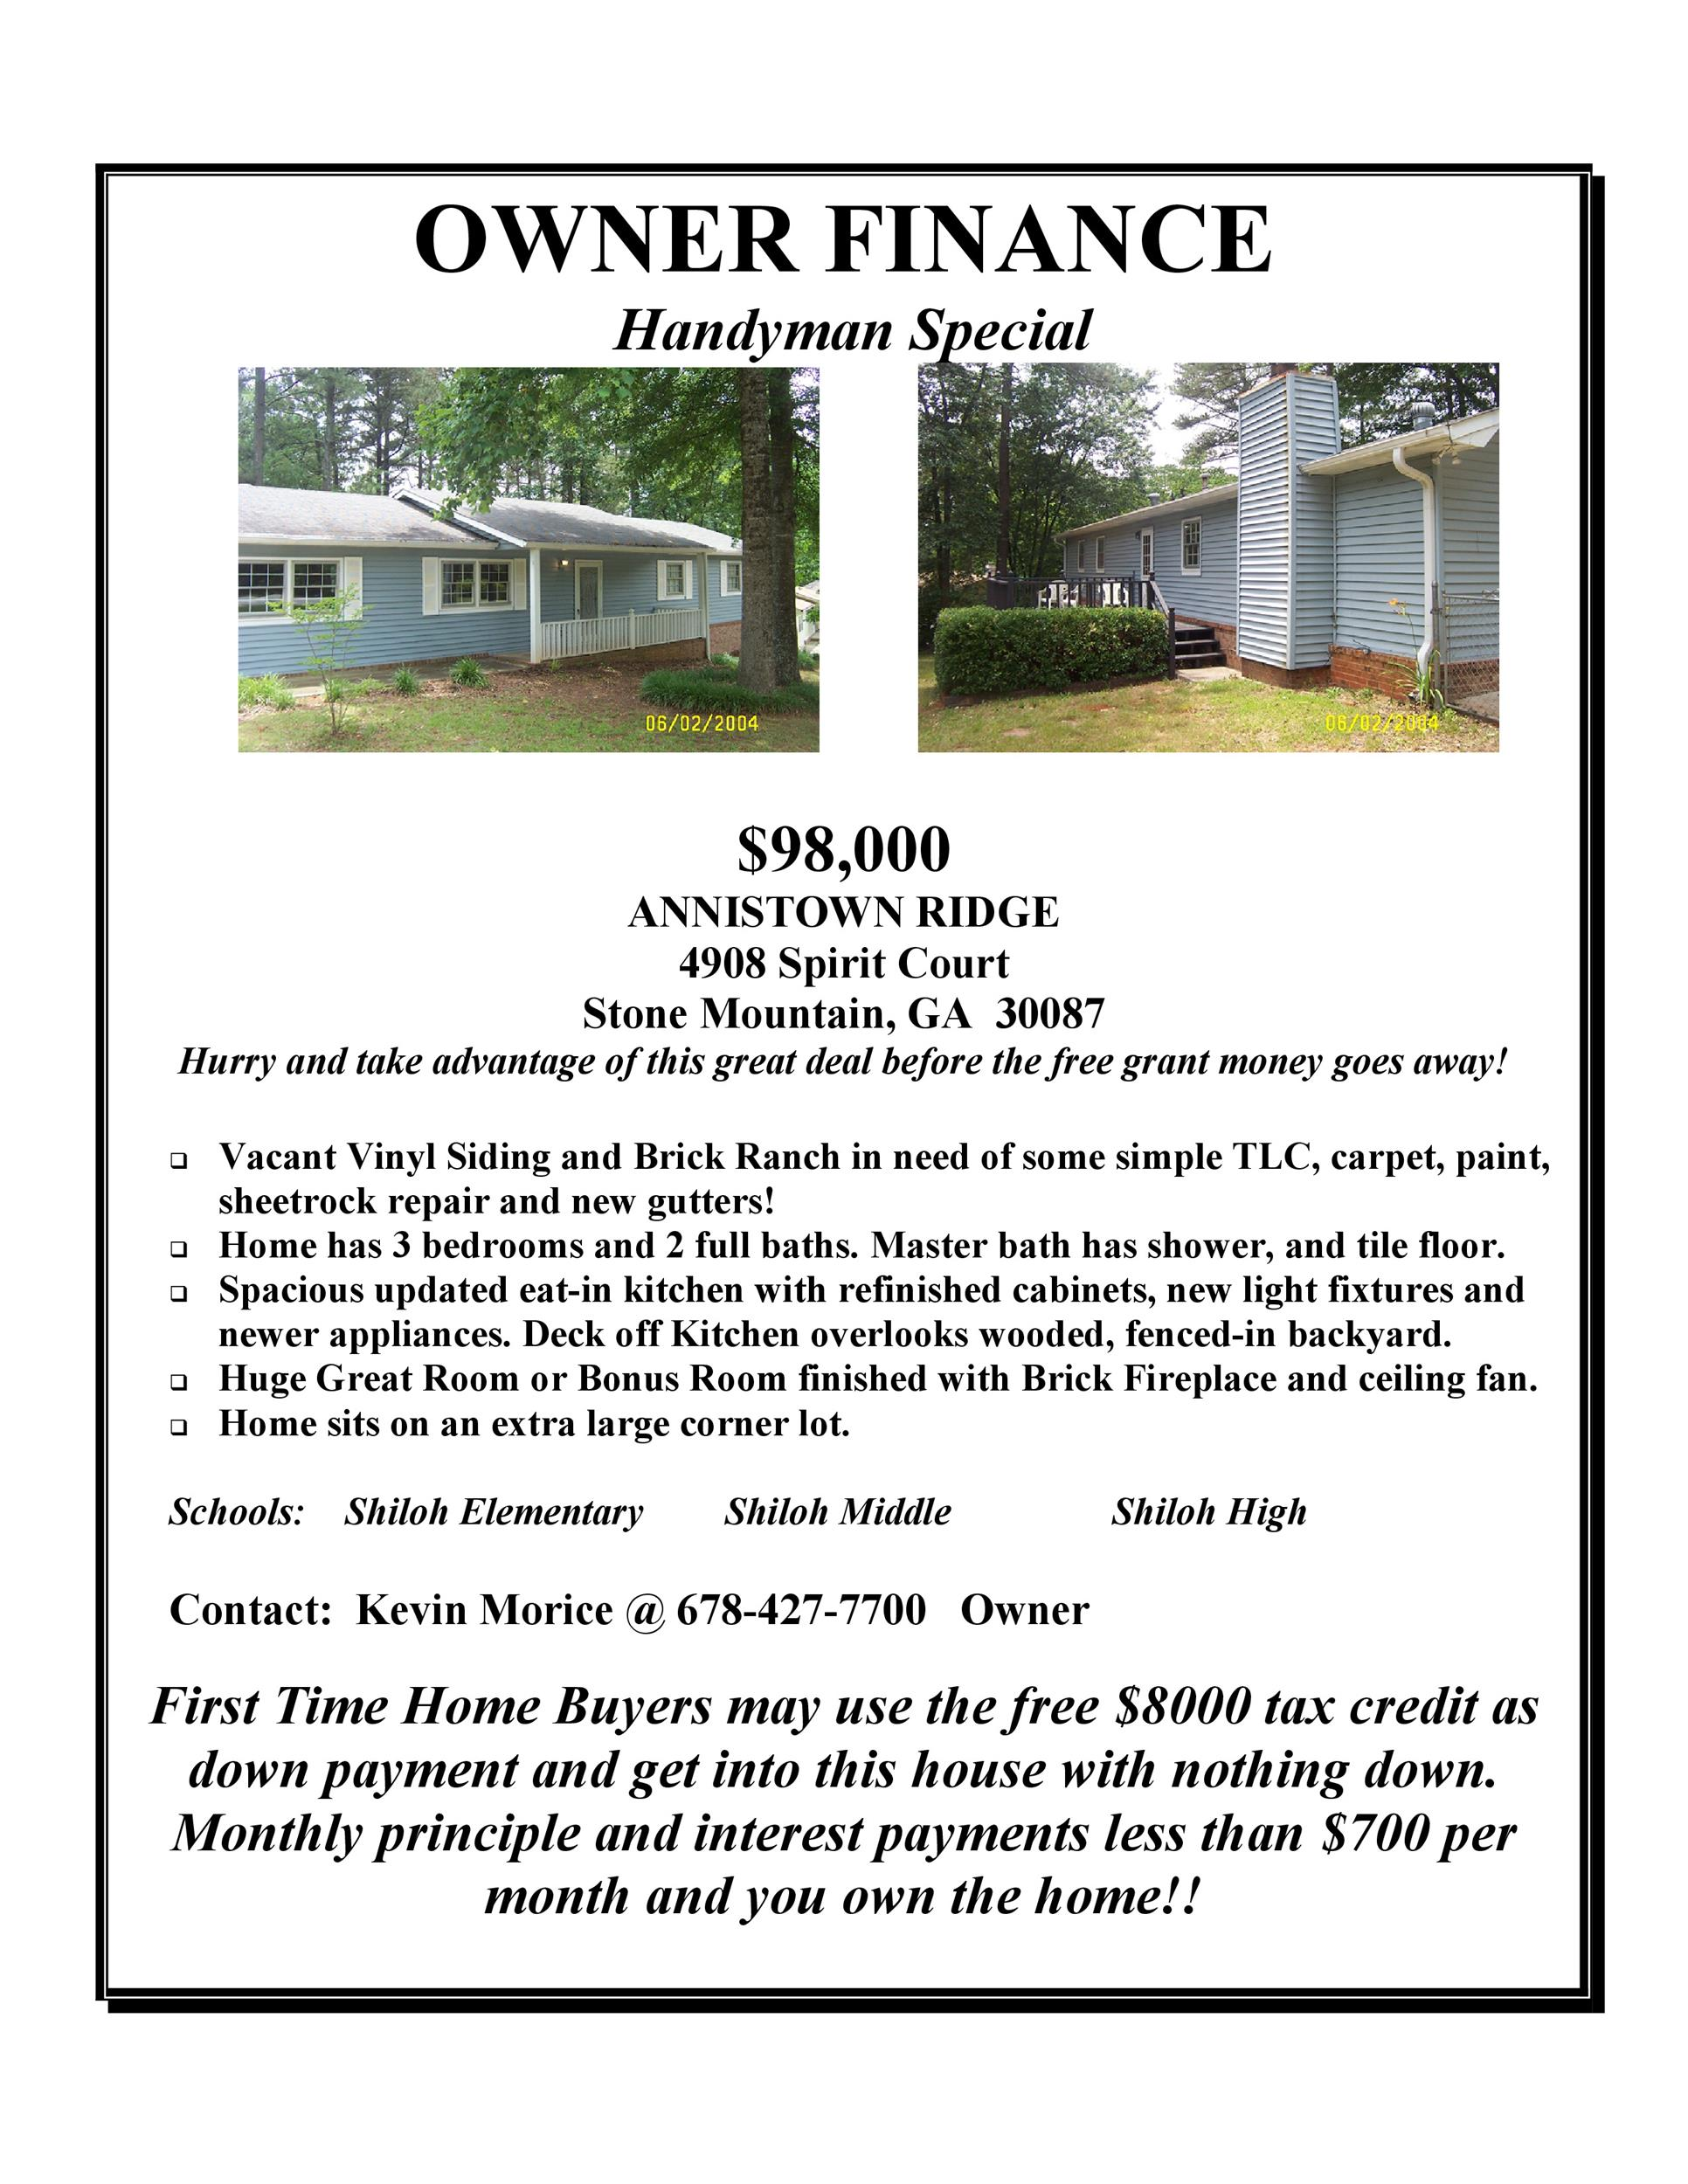 Free house for sale flyer 40